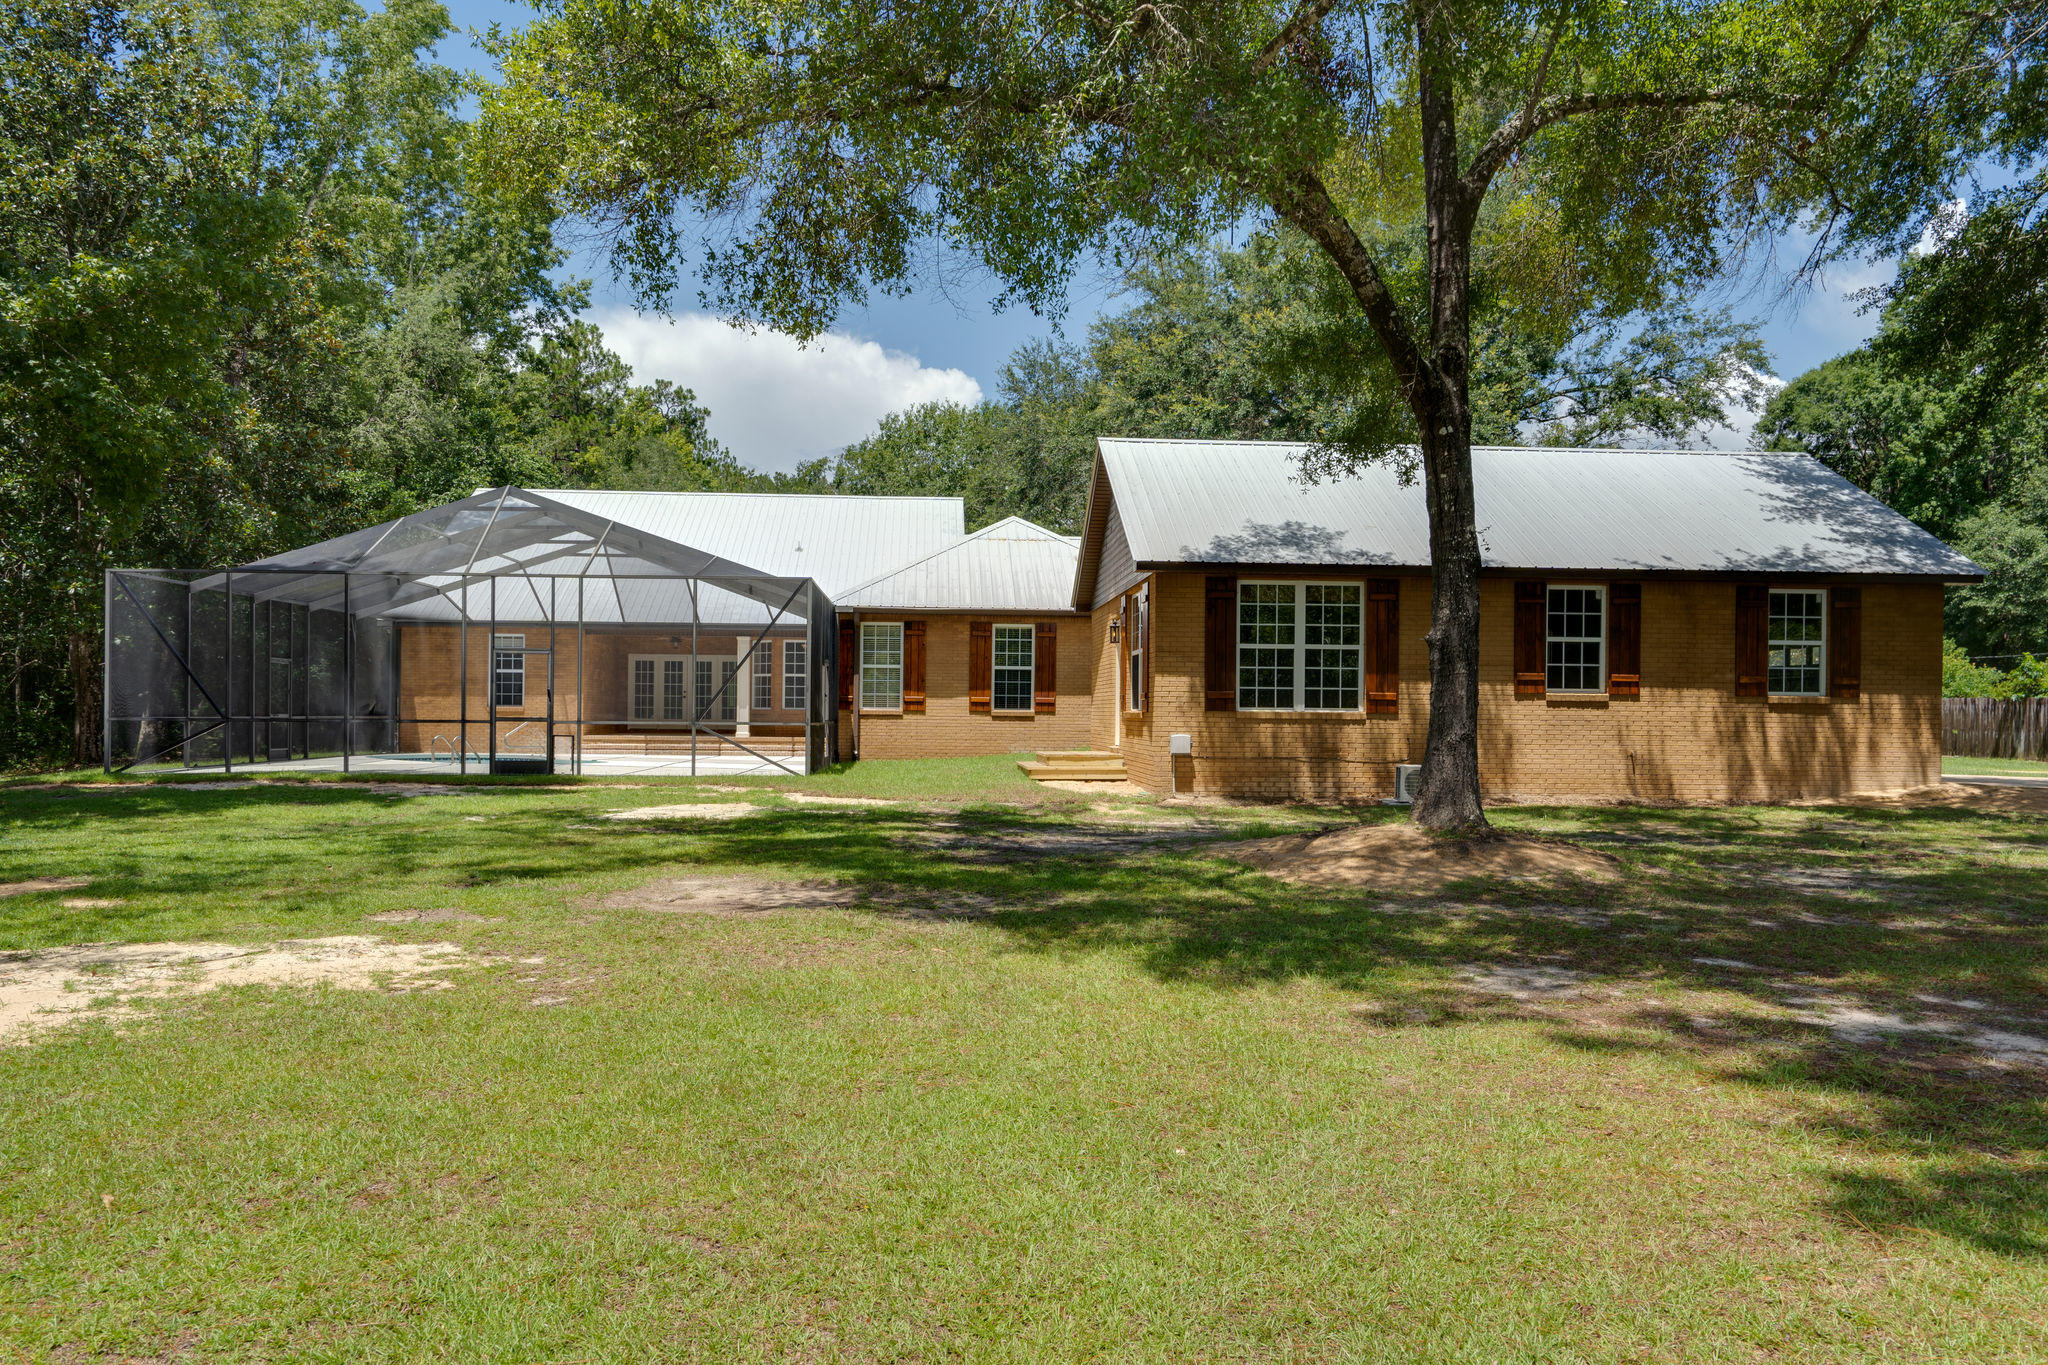 Photo of home for sale at 4843 Co Highway 3280, Freeport FL